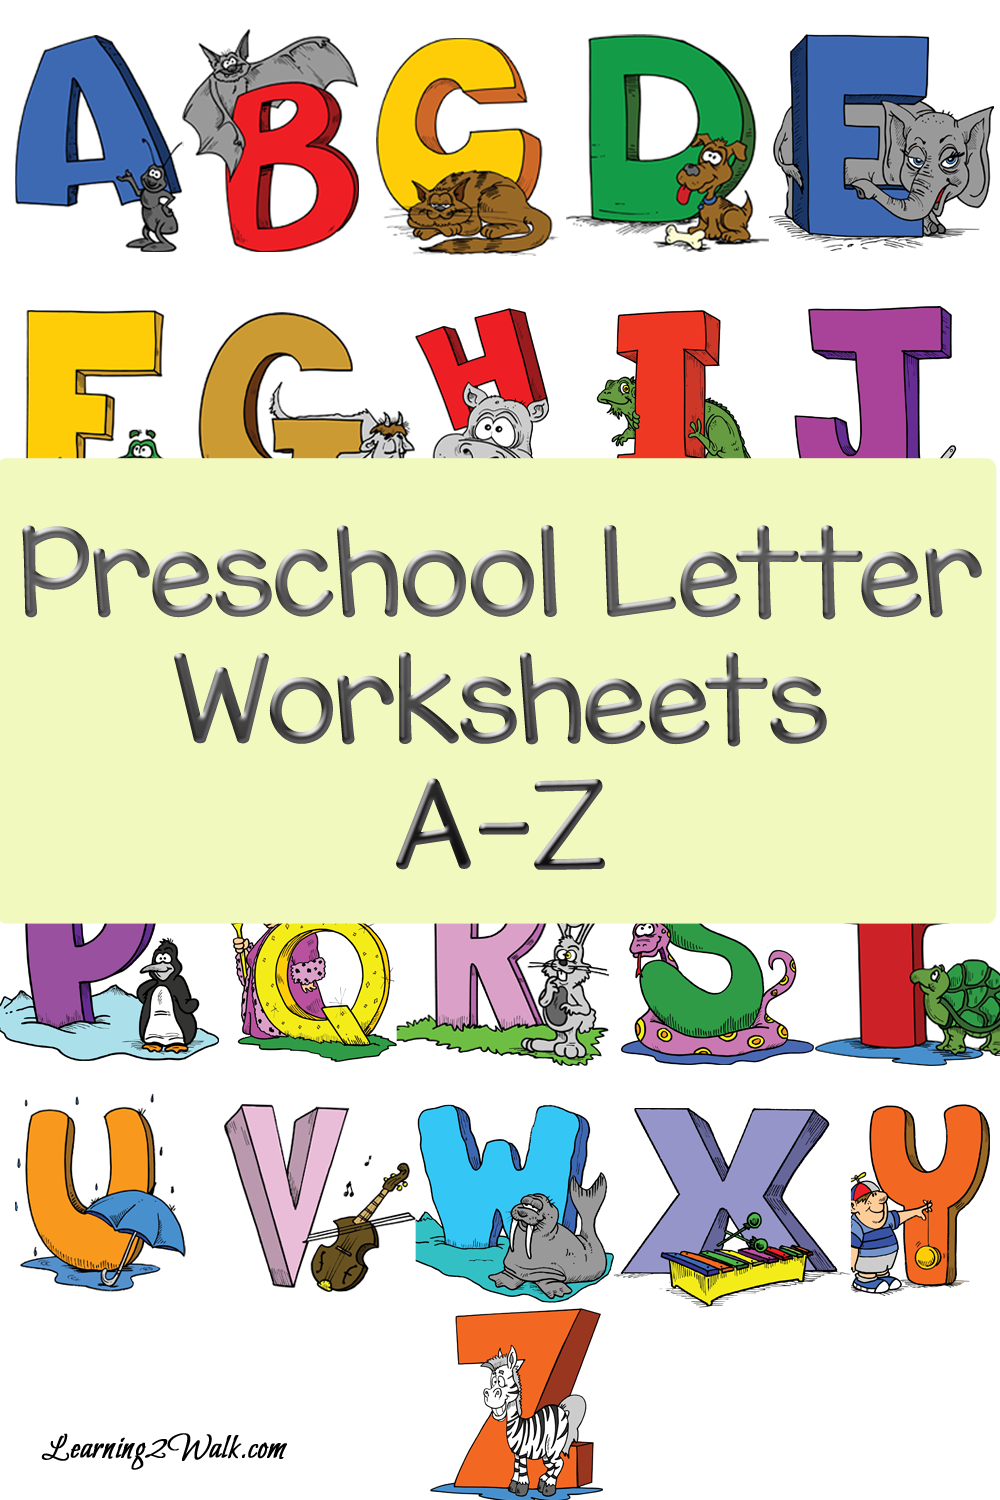 Free Preschool Letter Worksheets To Try With Your Kids  The  printable worksheets, math worksheets, worksheets for teachers, learning, multiplication, and free worksheets Preschool Letter Worksheets Alphabet 1500 x 1000